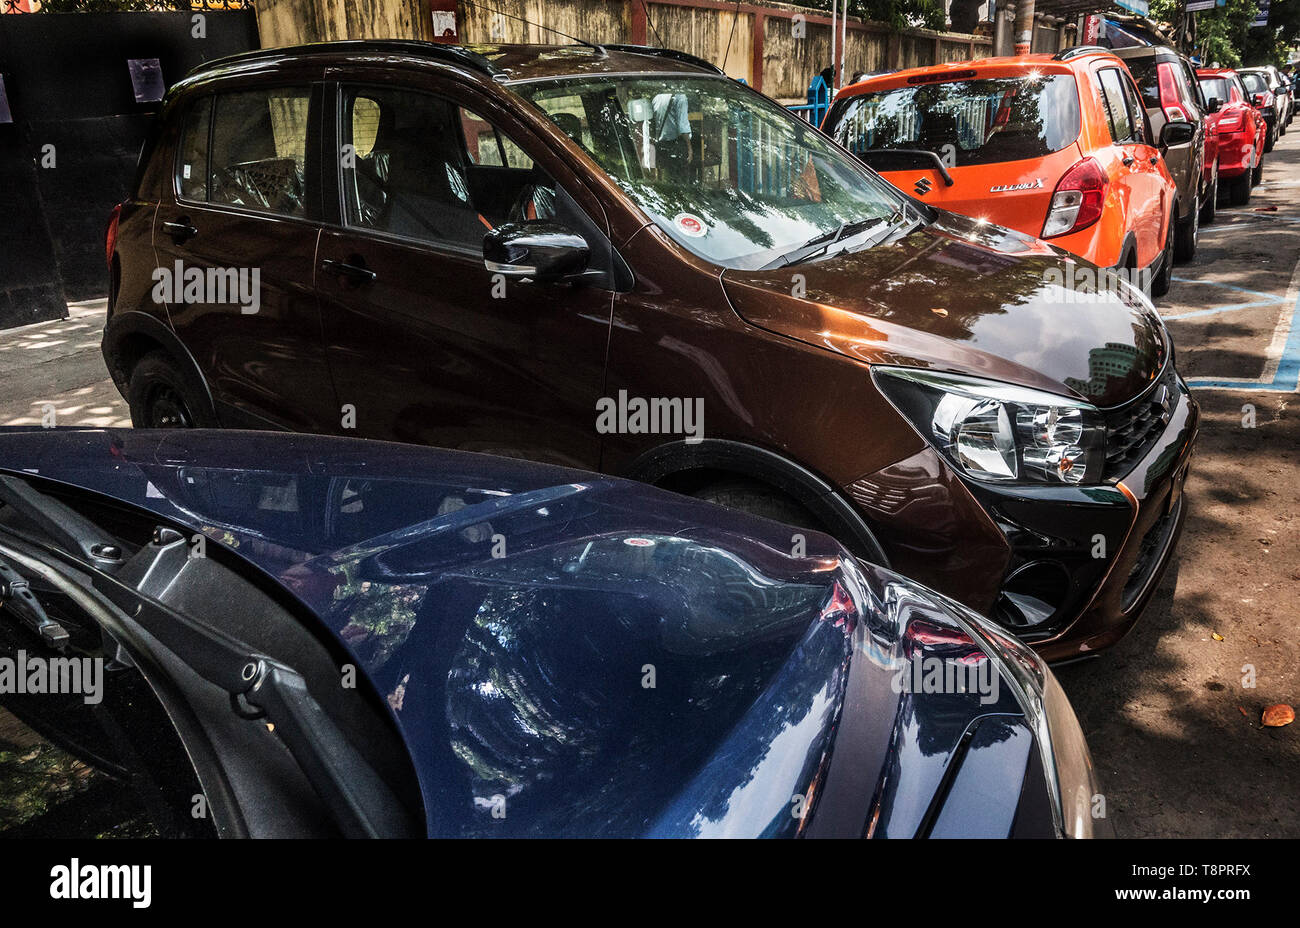 Kolkata, India. 14th May, 2019. New cars are seen outside a showroom in?Kolkata, India, May 14, 2019. India's automobile sector continued its bumpy ride for the fifth consecutive month in April with 20 percent drop in car sales and 16 percent drop in two-wheeler sales, compared with the same period last year. The drastic drop in sales was attributed to several factors including liquidity squeeze in the market, rising fuel cost, interest rates and insurance costs that has dampened consumer sentiment. Credit: Tumpa Mondal/Xinhua/Alamy Live News Stock Photo